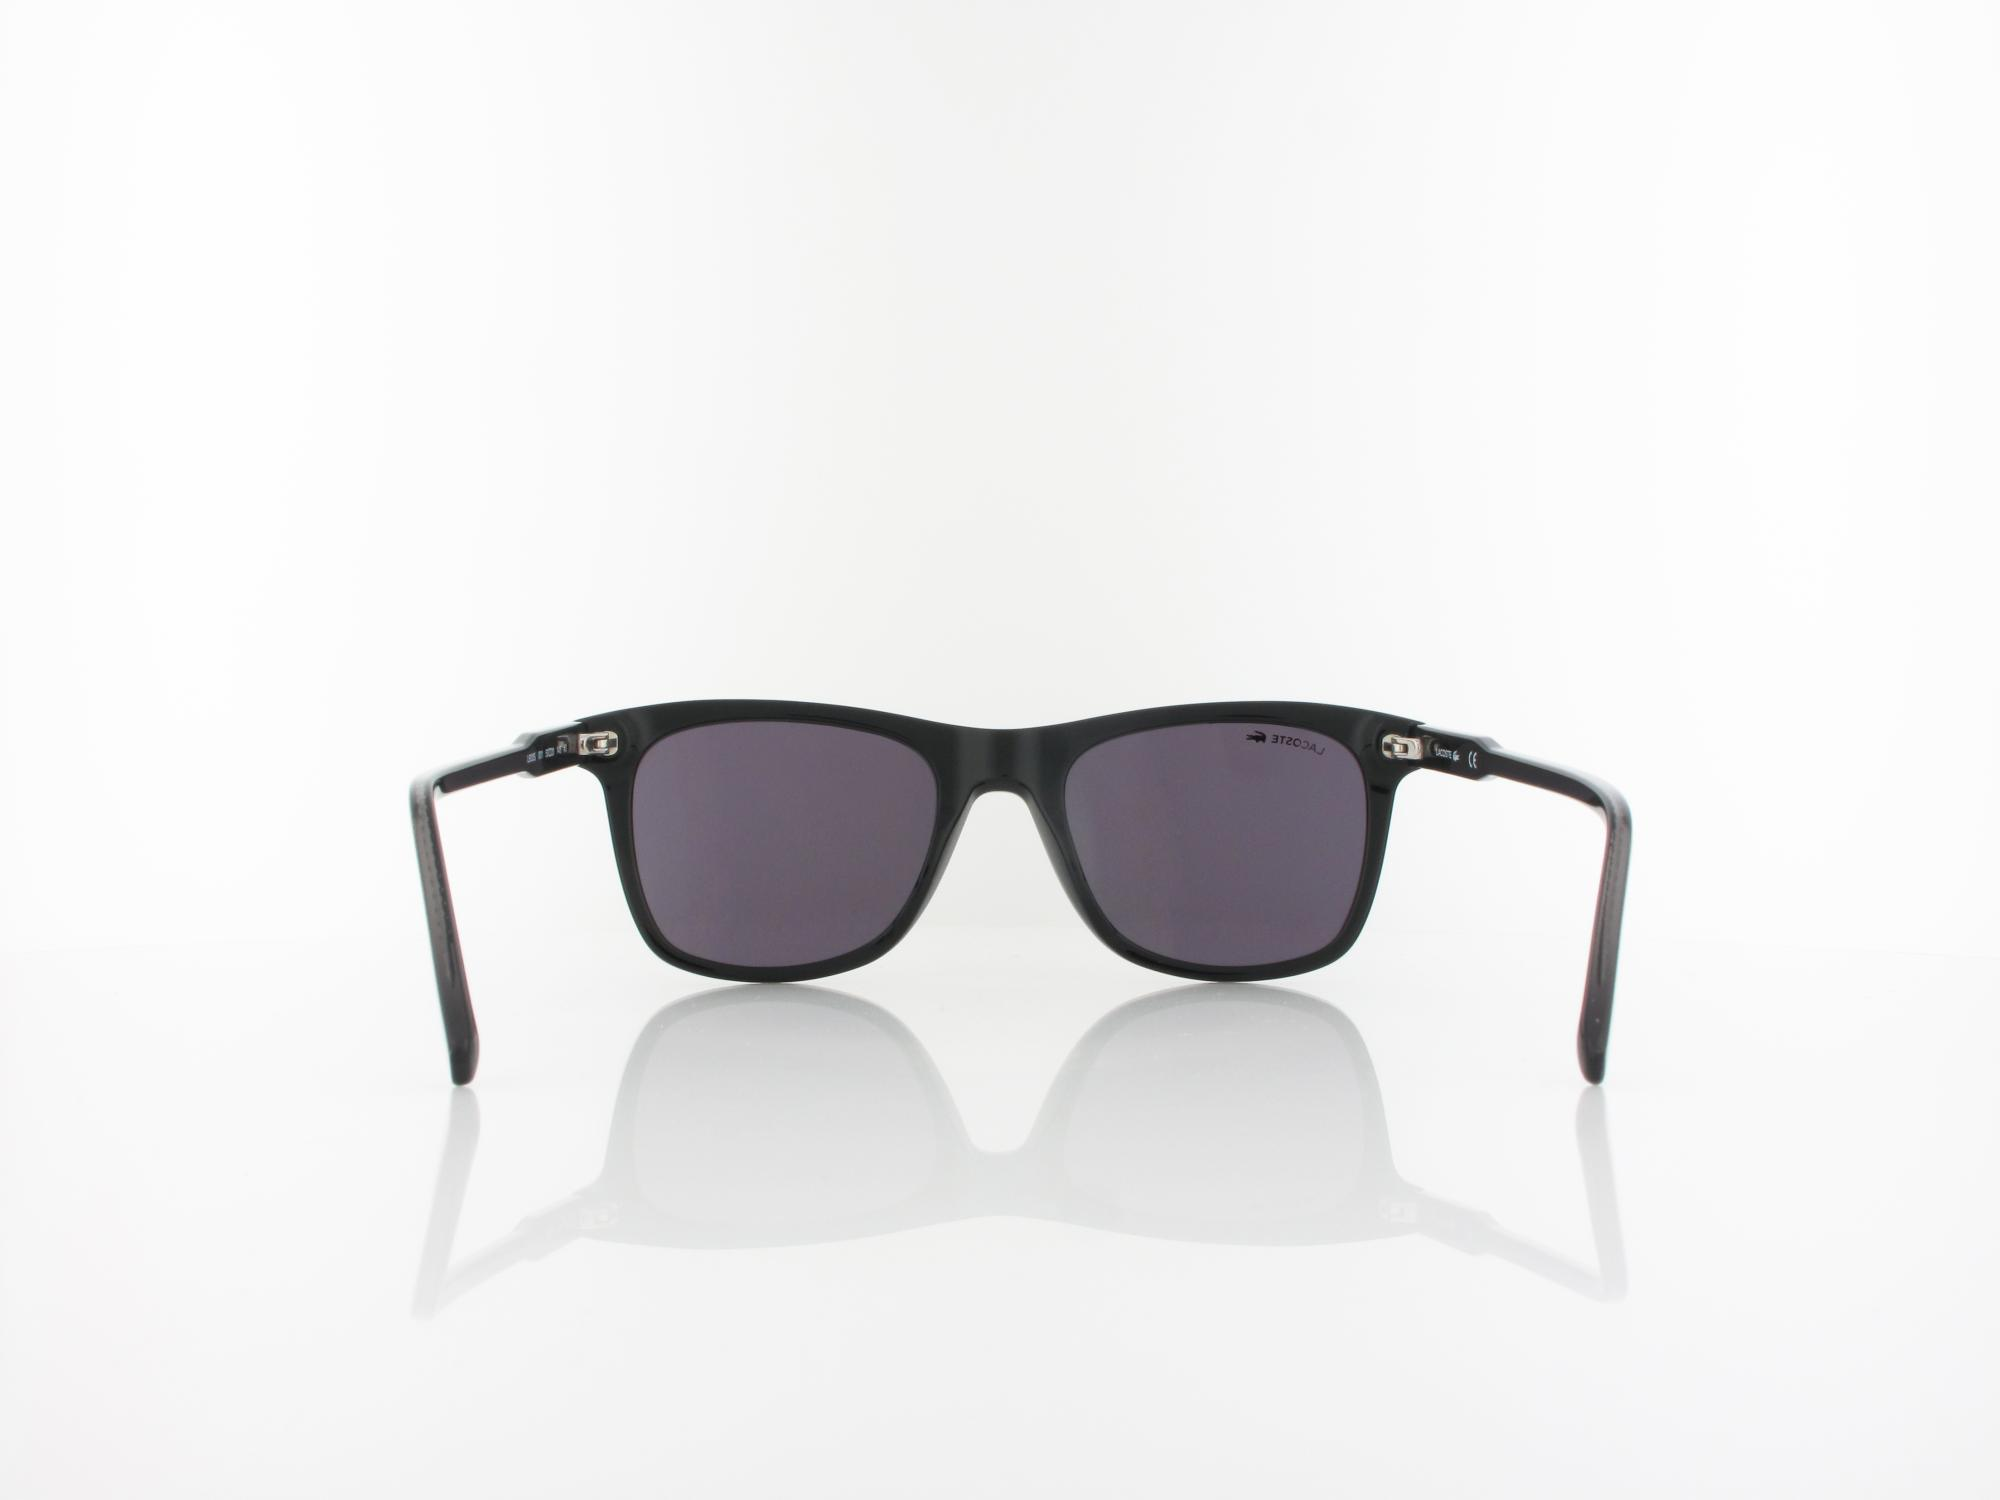 Lacoste | L933S 001 53 | black / grey solid